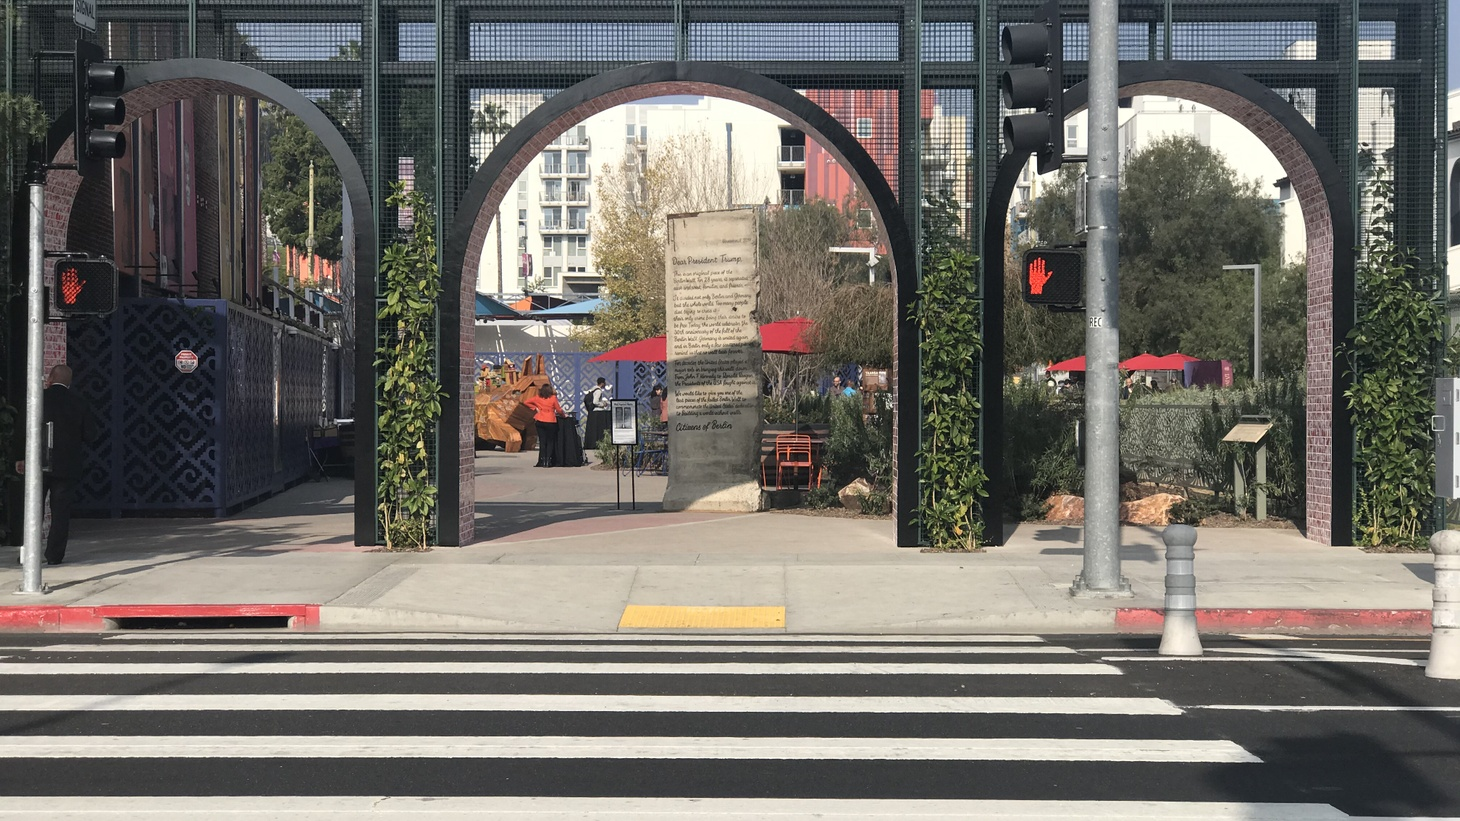 A gateway off N. Main Street marks the entrance to the paseo, which was designed by LA-based landscape designers SWA, and continues through the LA Plaza Village mixed-used development.